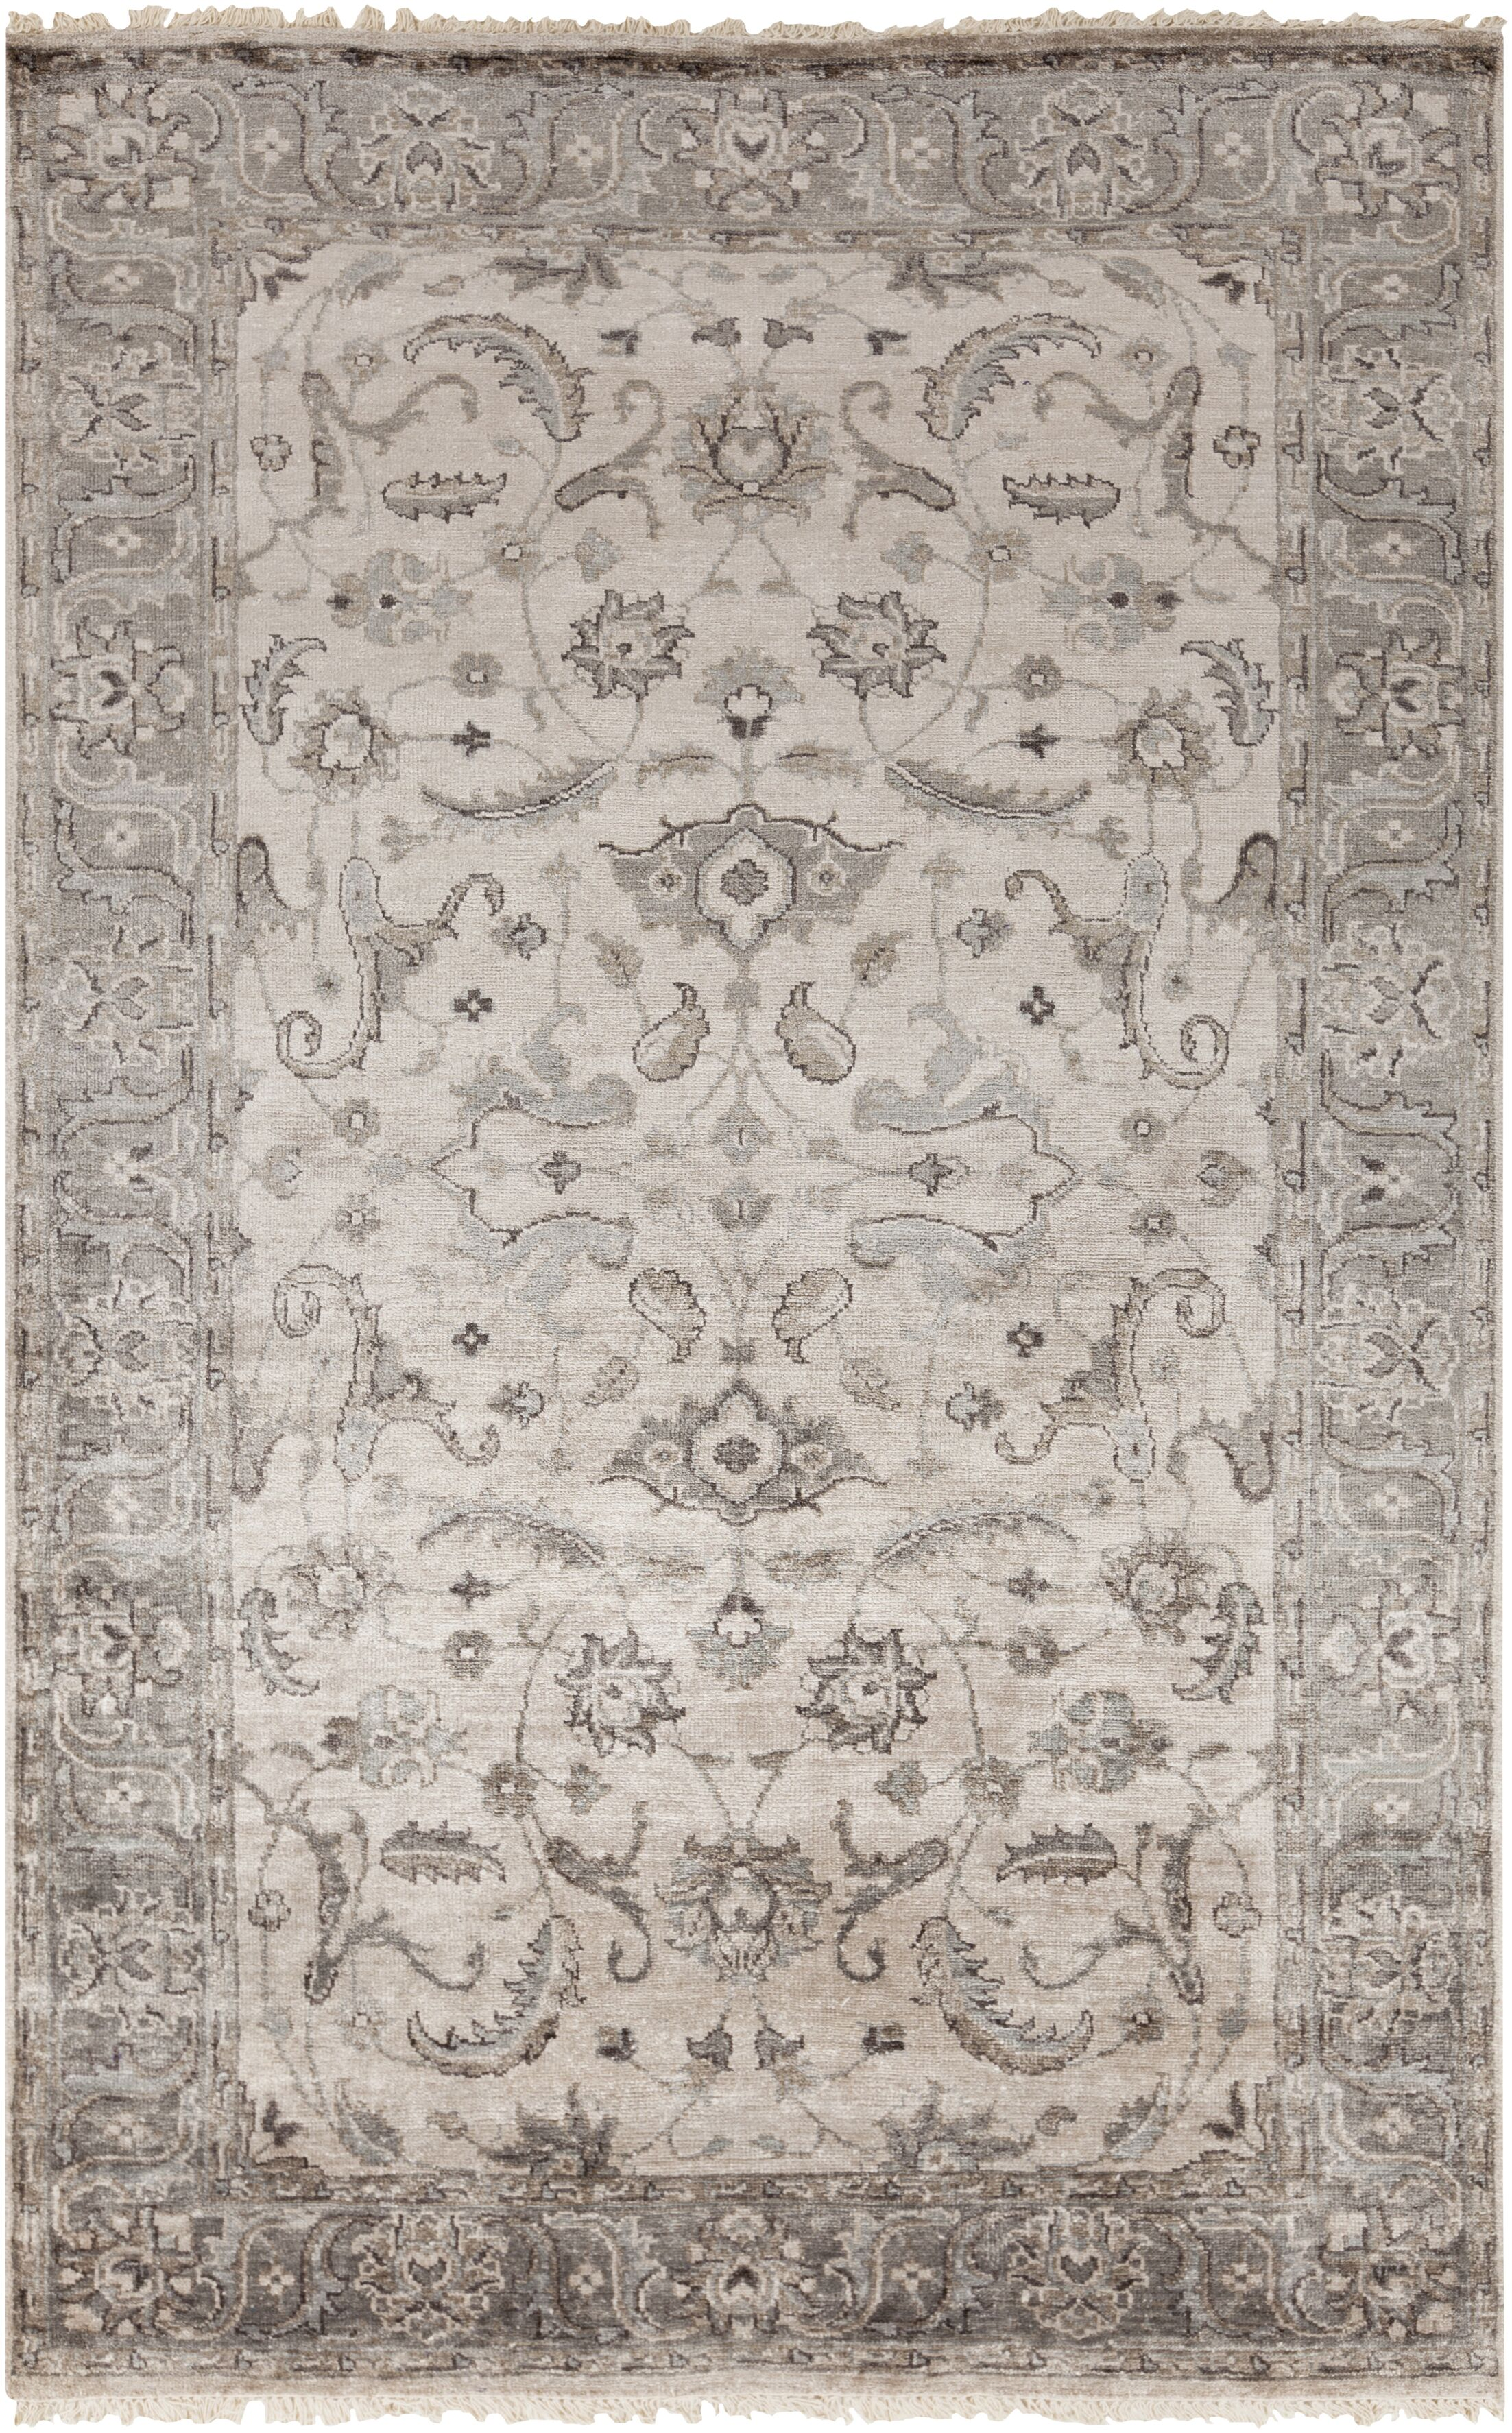 Gullette Hand Knotted Gray Area Rug Rug Size: Rectangle 6' x 9'